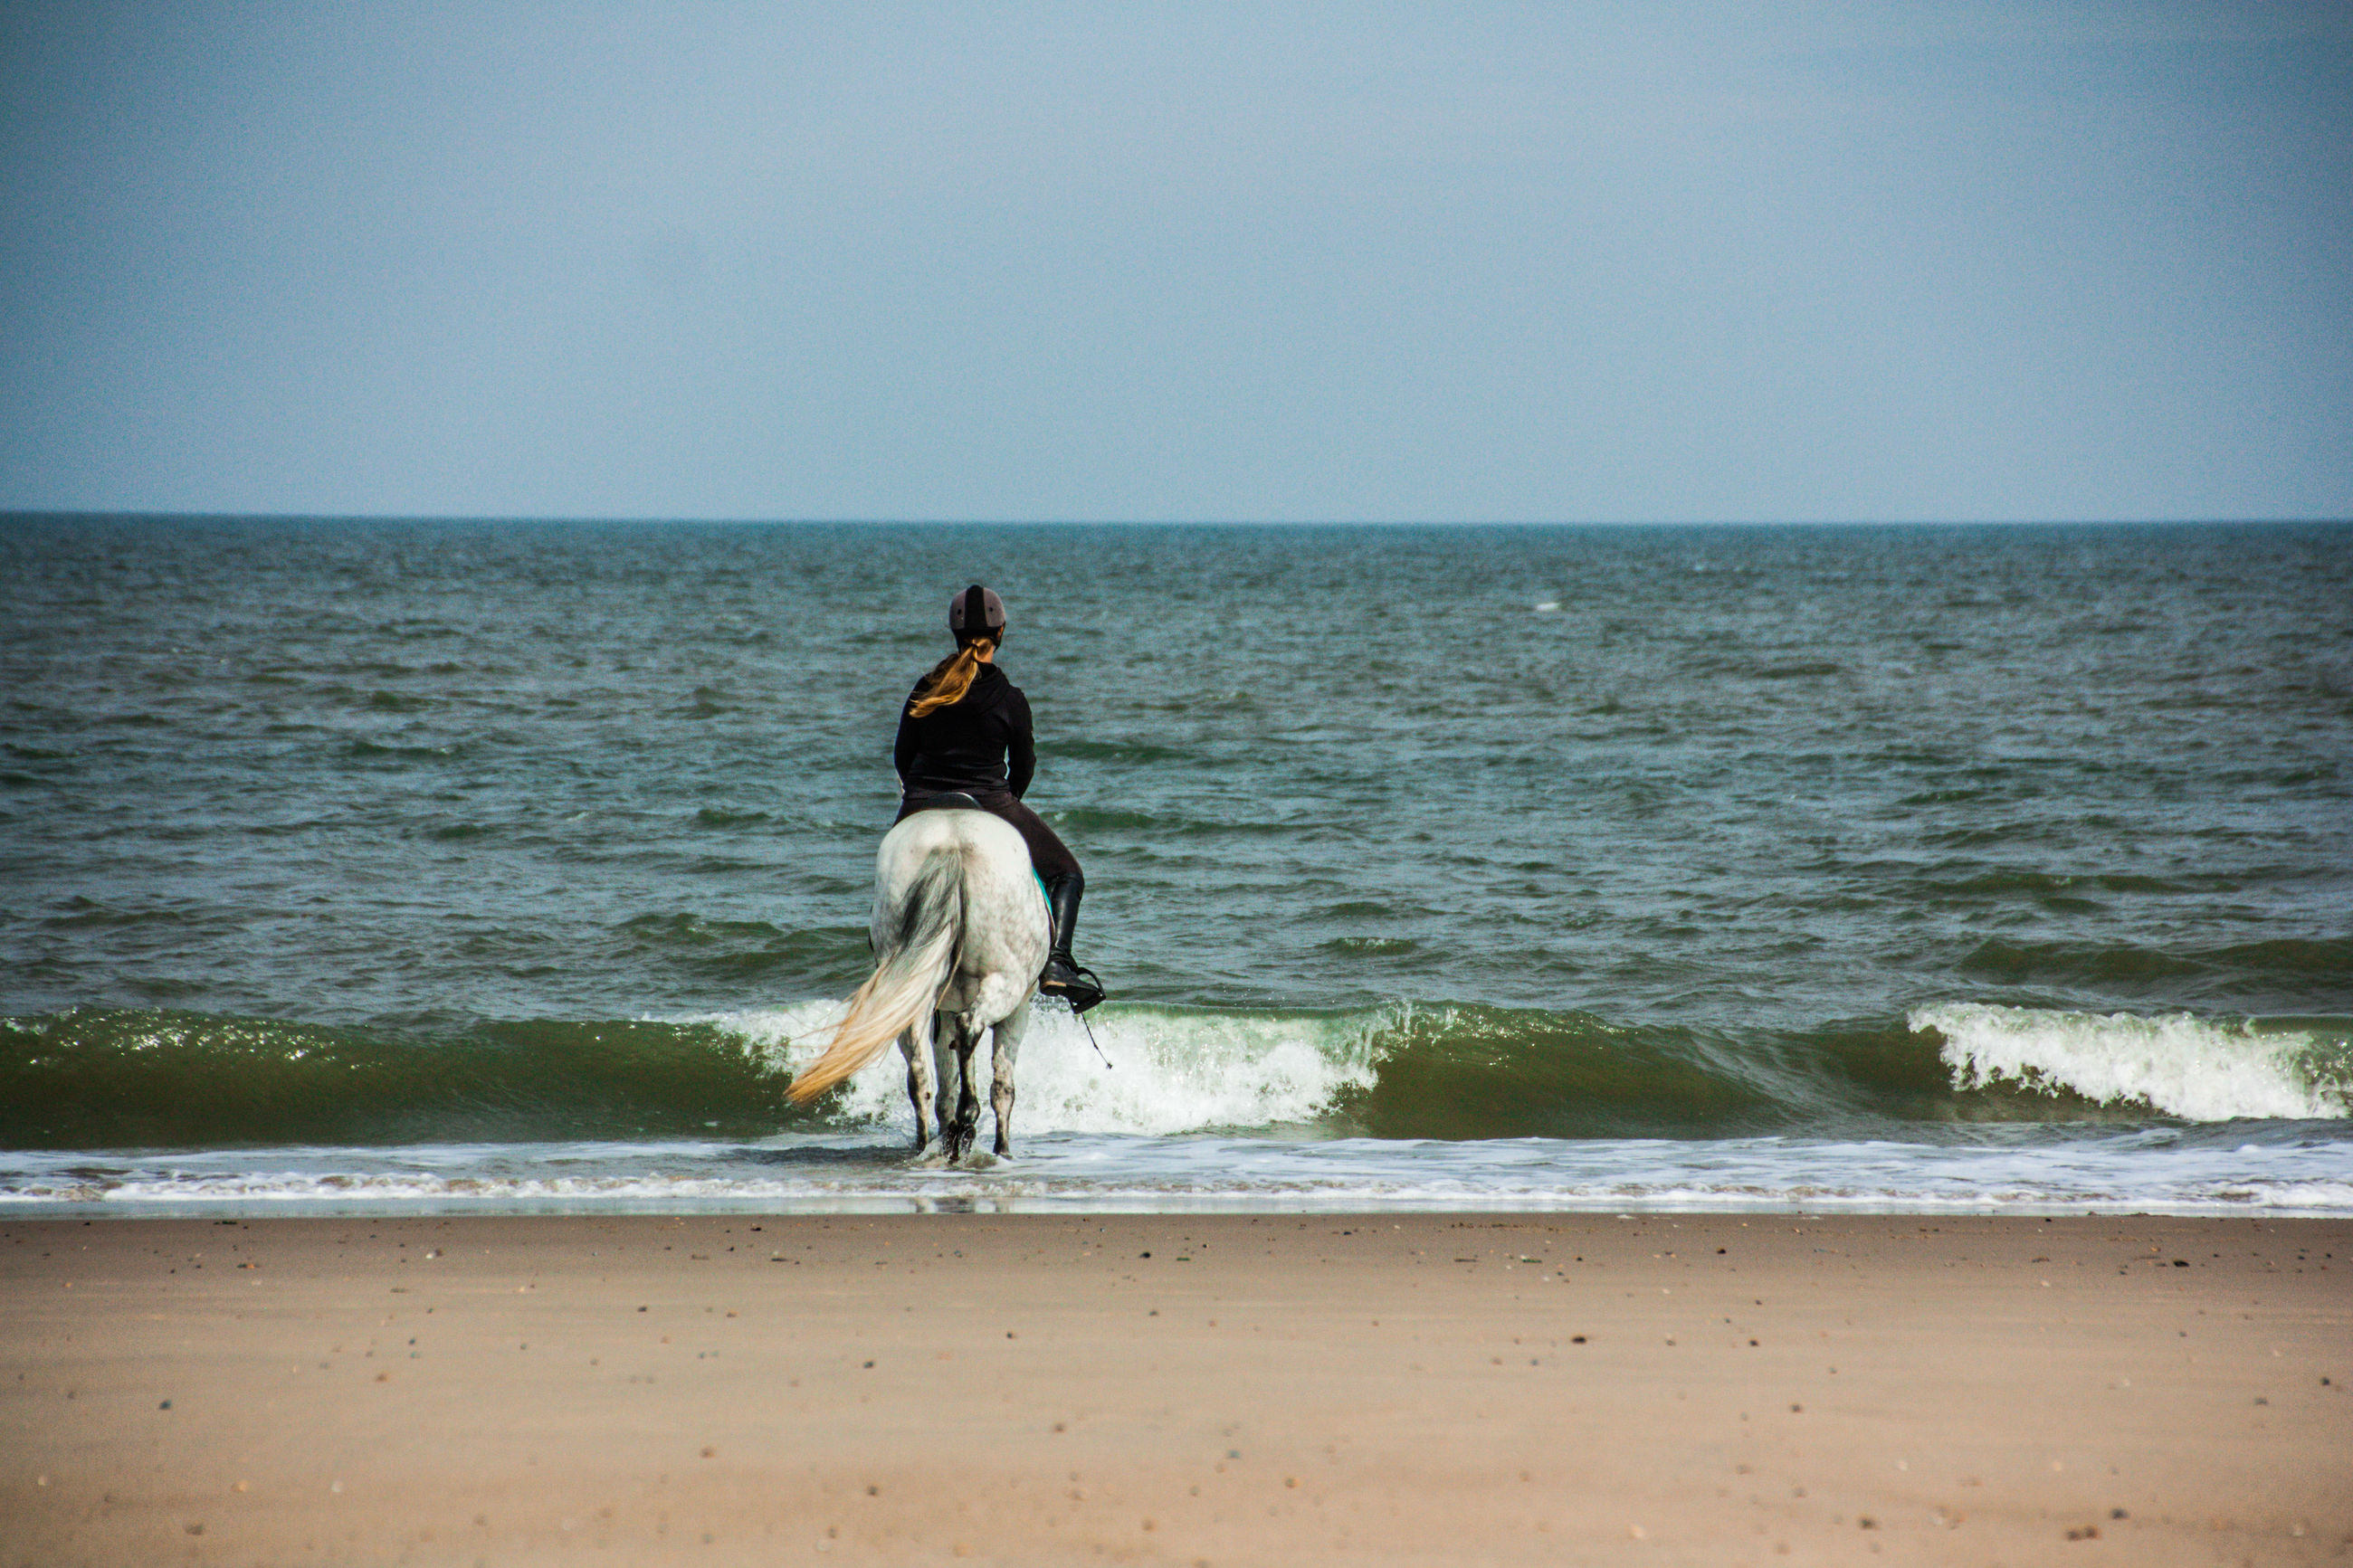 sea, water, beach, horizon over water, land, horizon, sky, ocean, body of water, horse, shore, nature, rear view, wave, motion, one person, full length, vacation, sand, domestic animals, beauty in nature, coast, leisure activity, pet, clear sky, mammal, day, scenics - nature, adult, lifestyles, animal, sitting, one animal, horseback riding, outdoors, riding, animal themes, holiday, tranquility, trip, person, activity, tranquil scene, sunny, dog, women